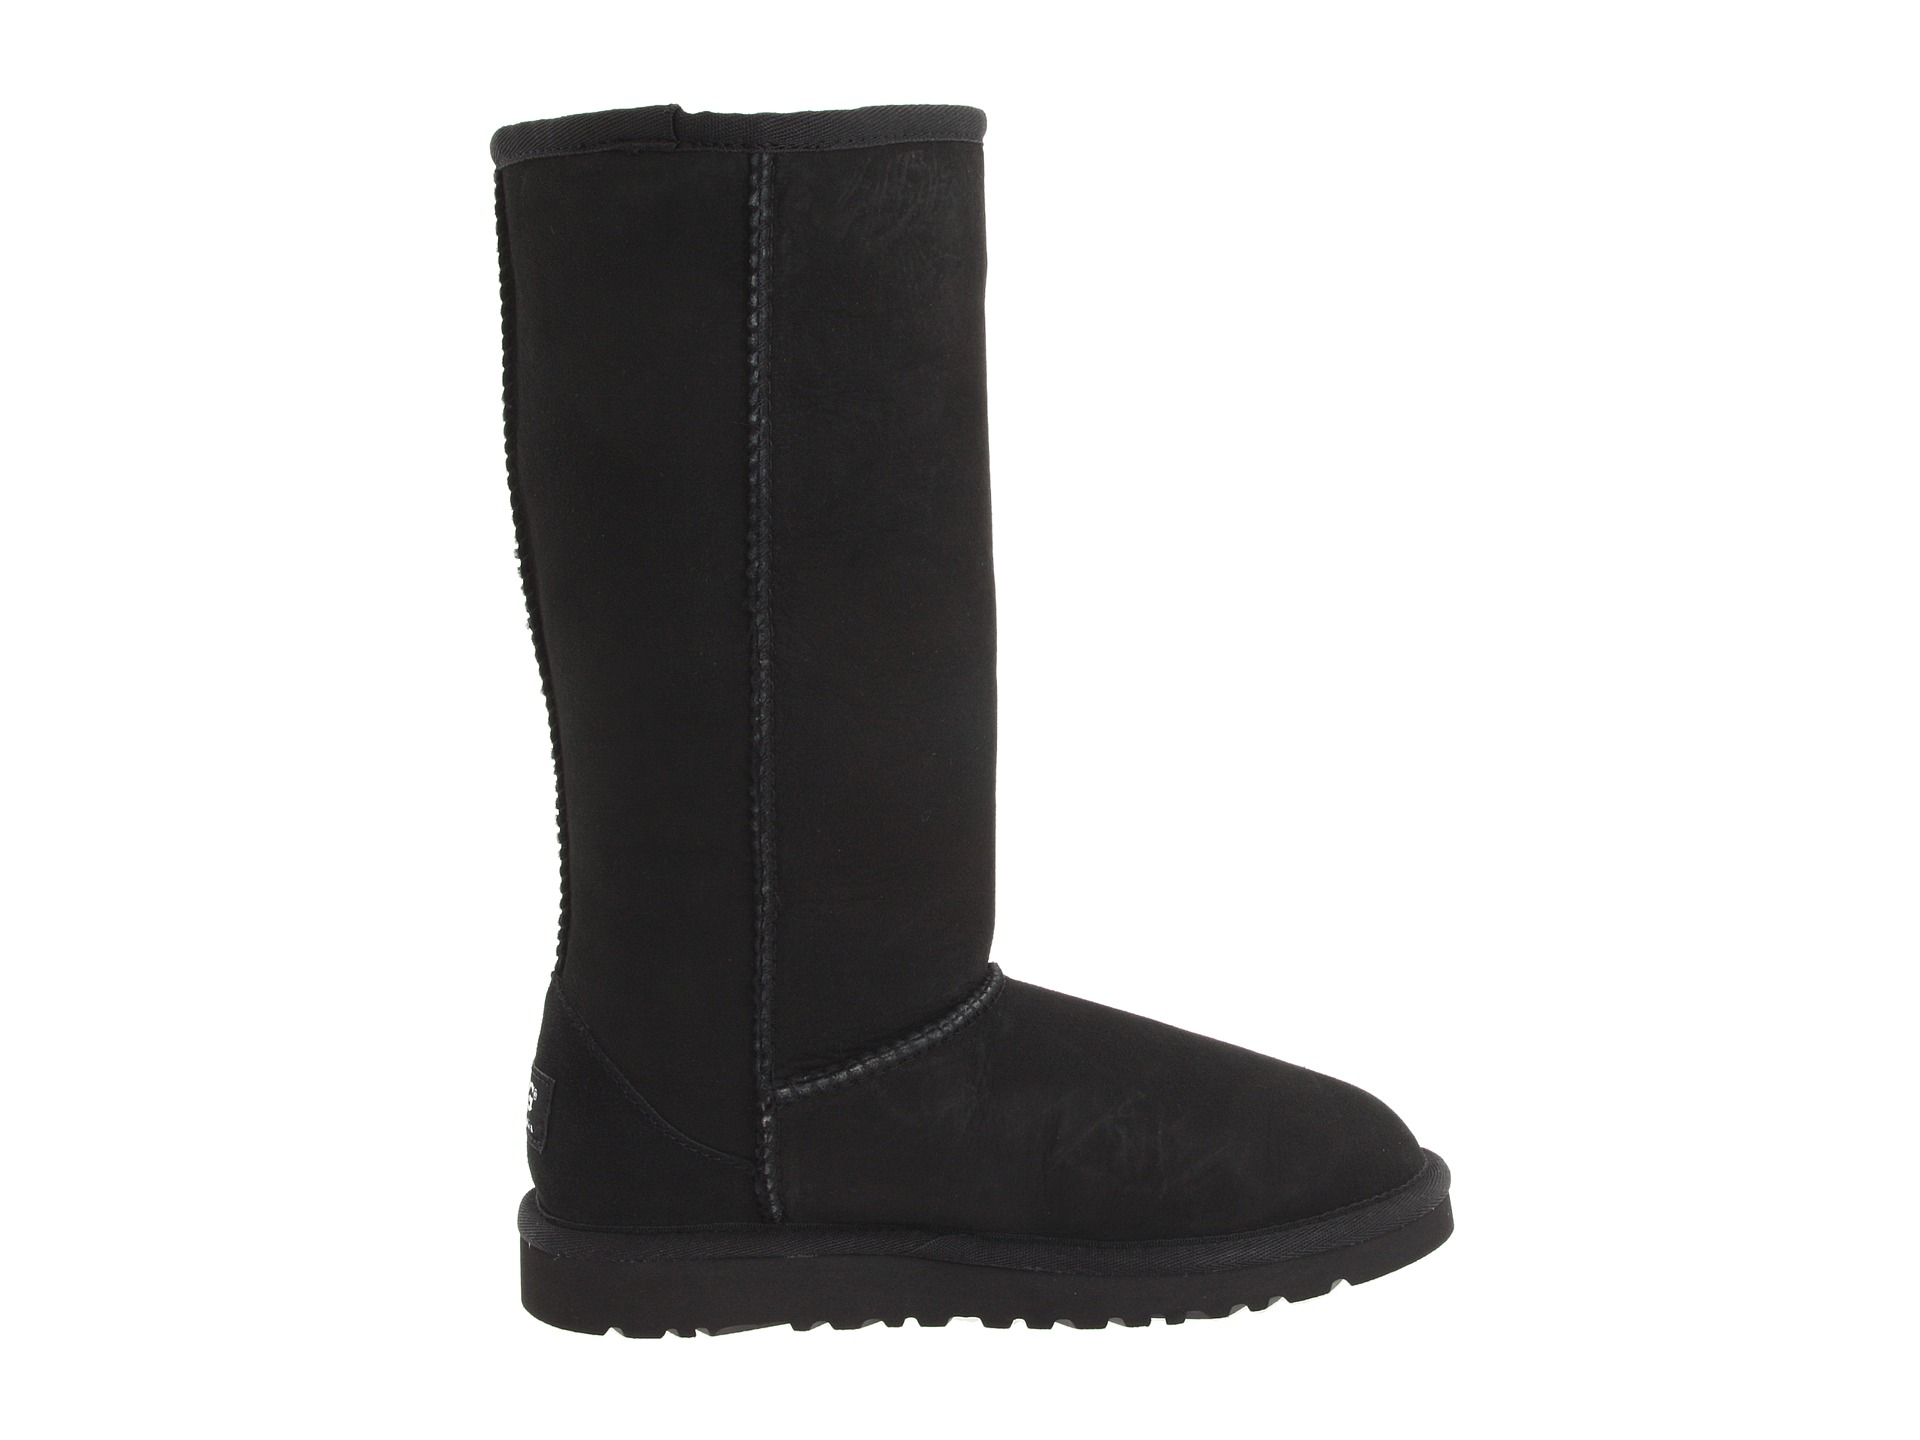 Holiday Sale: Deals up to 75% off along with Free Shipping on shoes, boots, sneakers, and sandals at zooland-fm.ml Shop the top brands like UGG, Timberland, adidas, Skechers, Clarks.